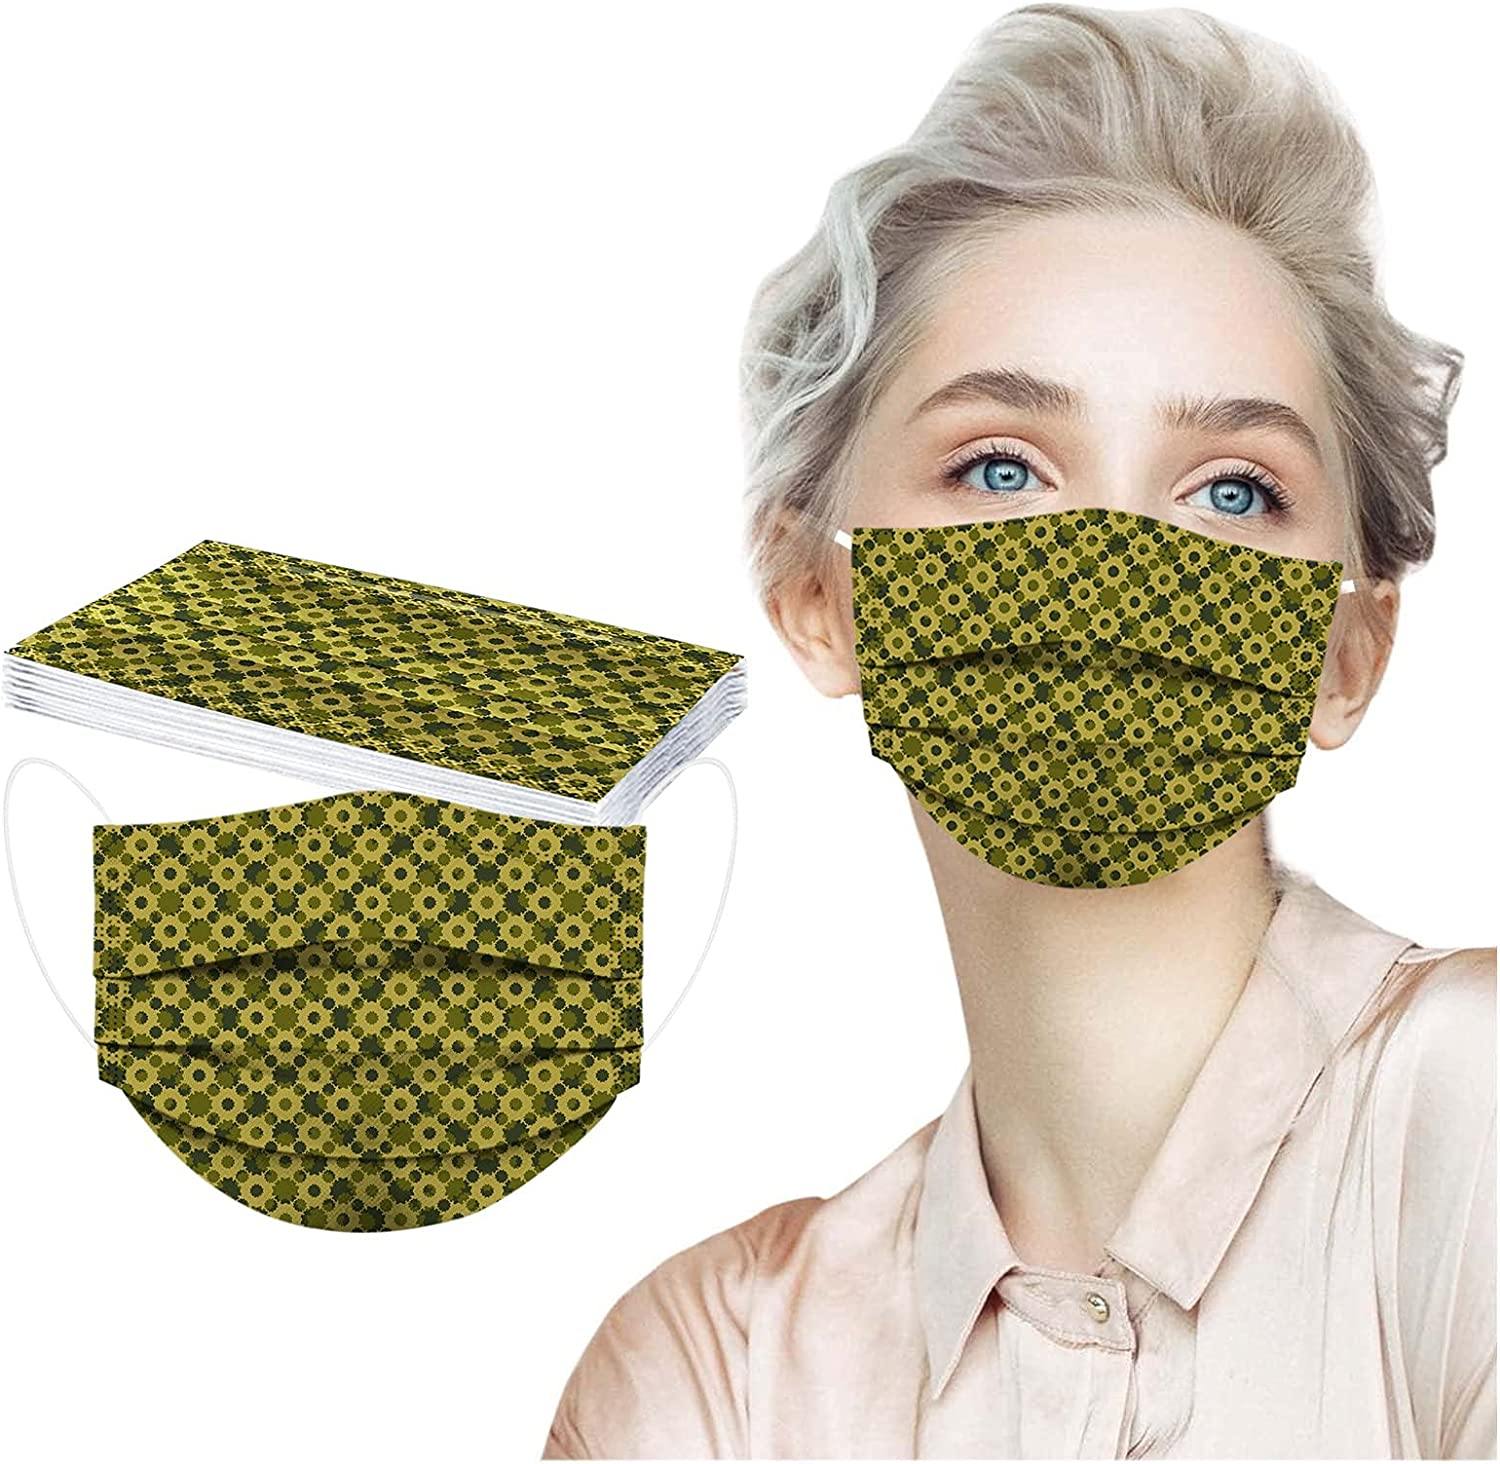 ERWGVH 50PCS Adults Face_Mask Special price Face Protections Disposable In a popularity 3Ply